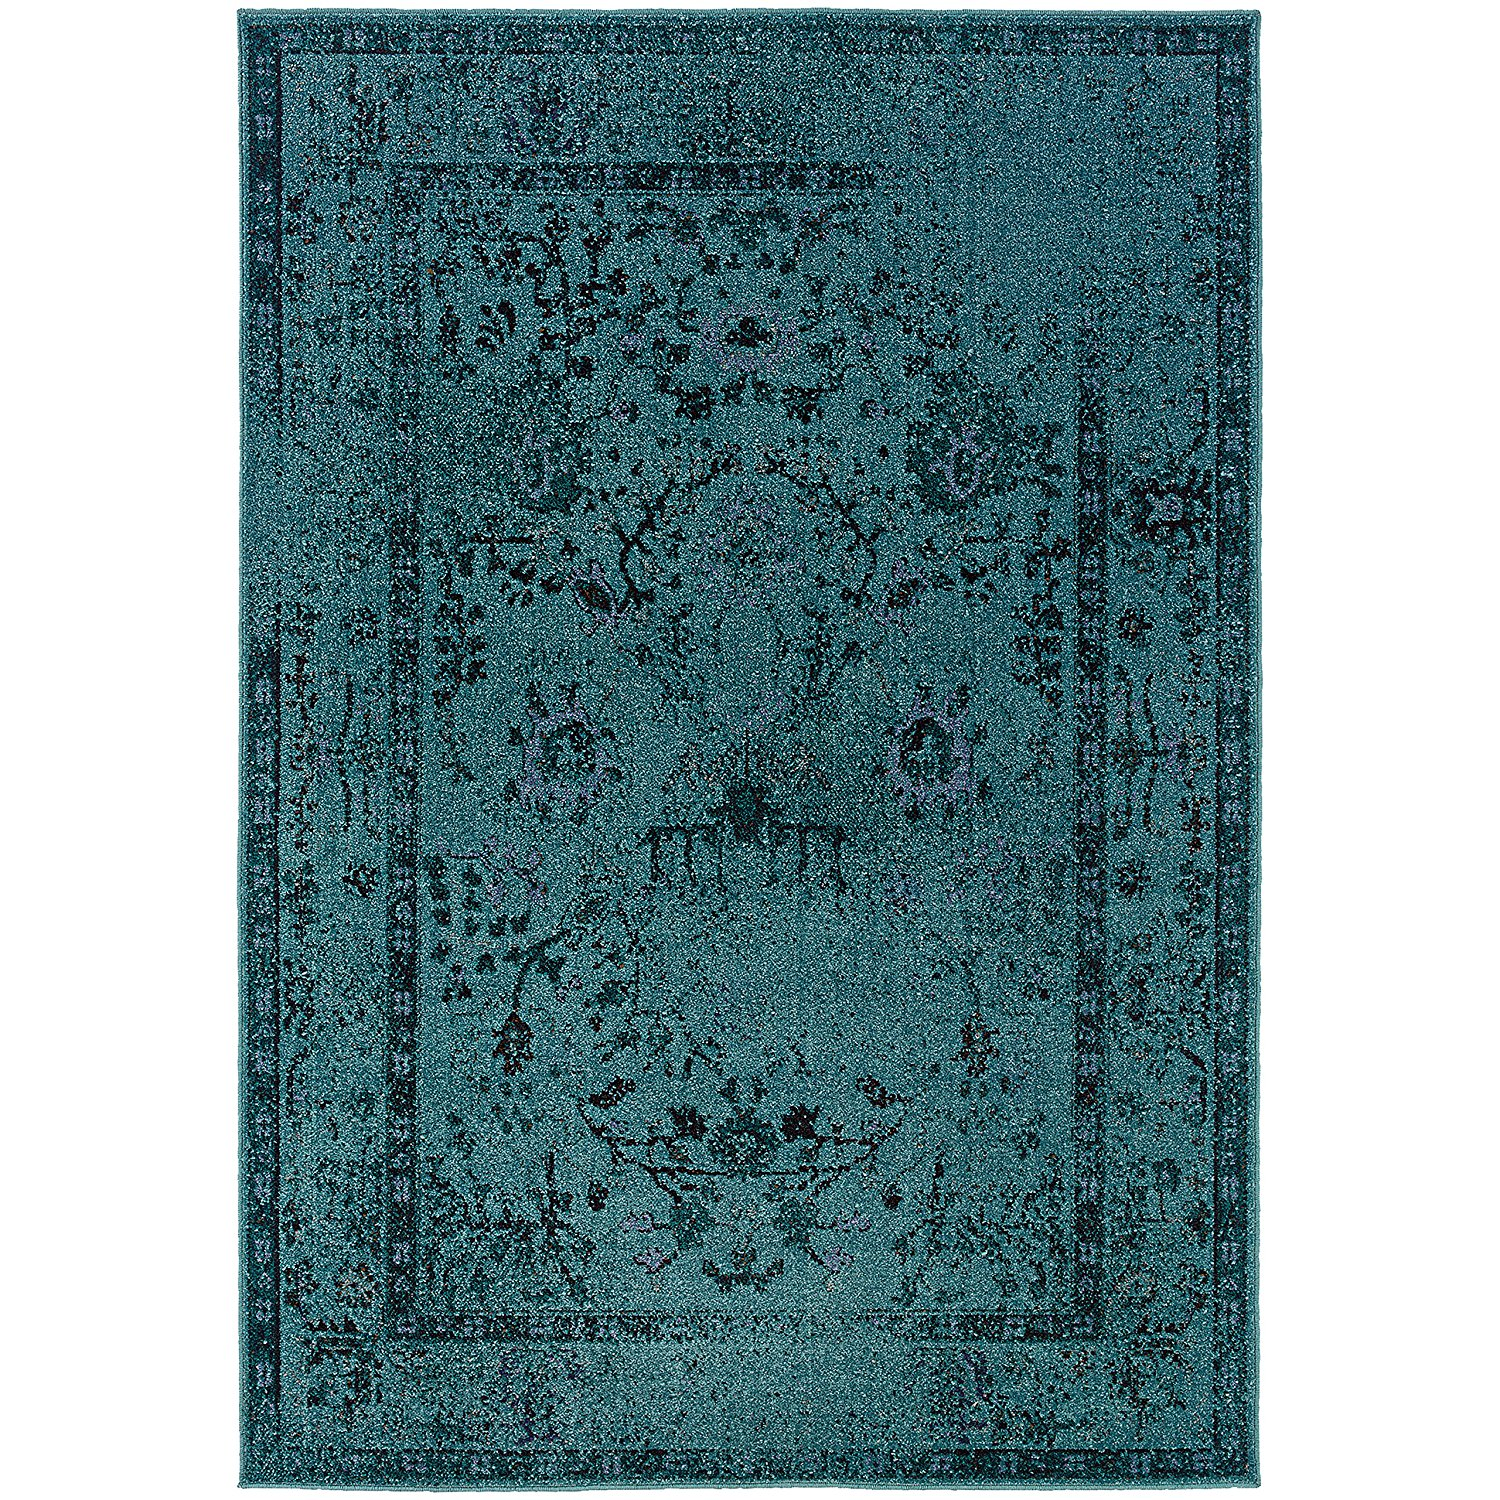 teal rugs amazon.com: oriental weavers revival 550h area rug 5u0027 3 x 7u00276 DKSPKTX